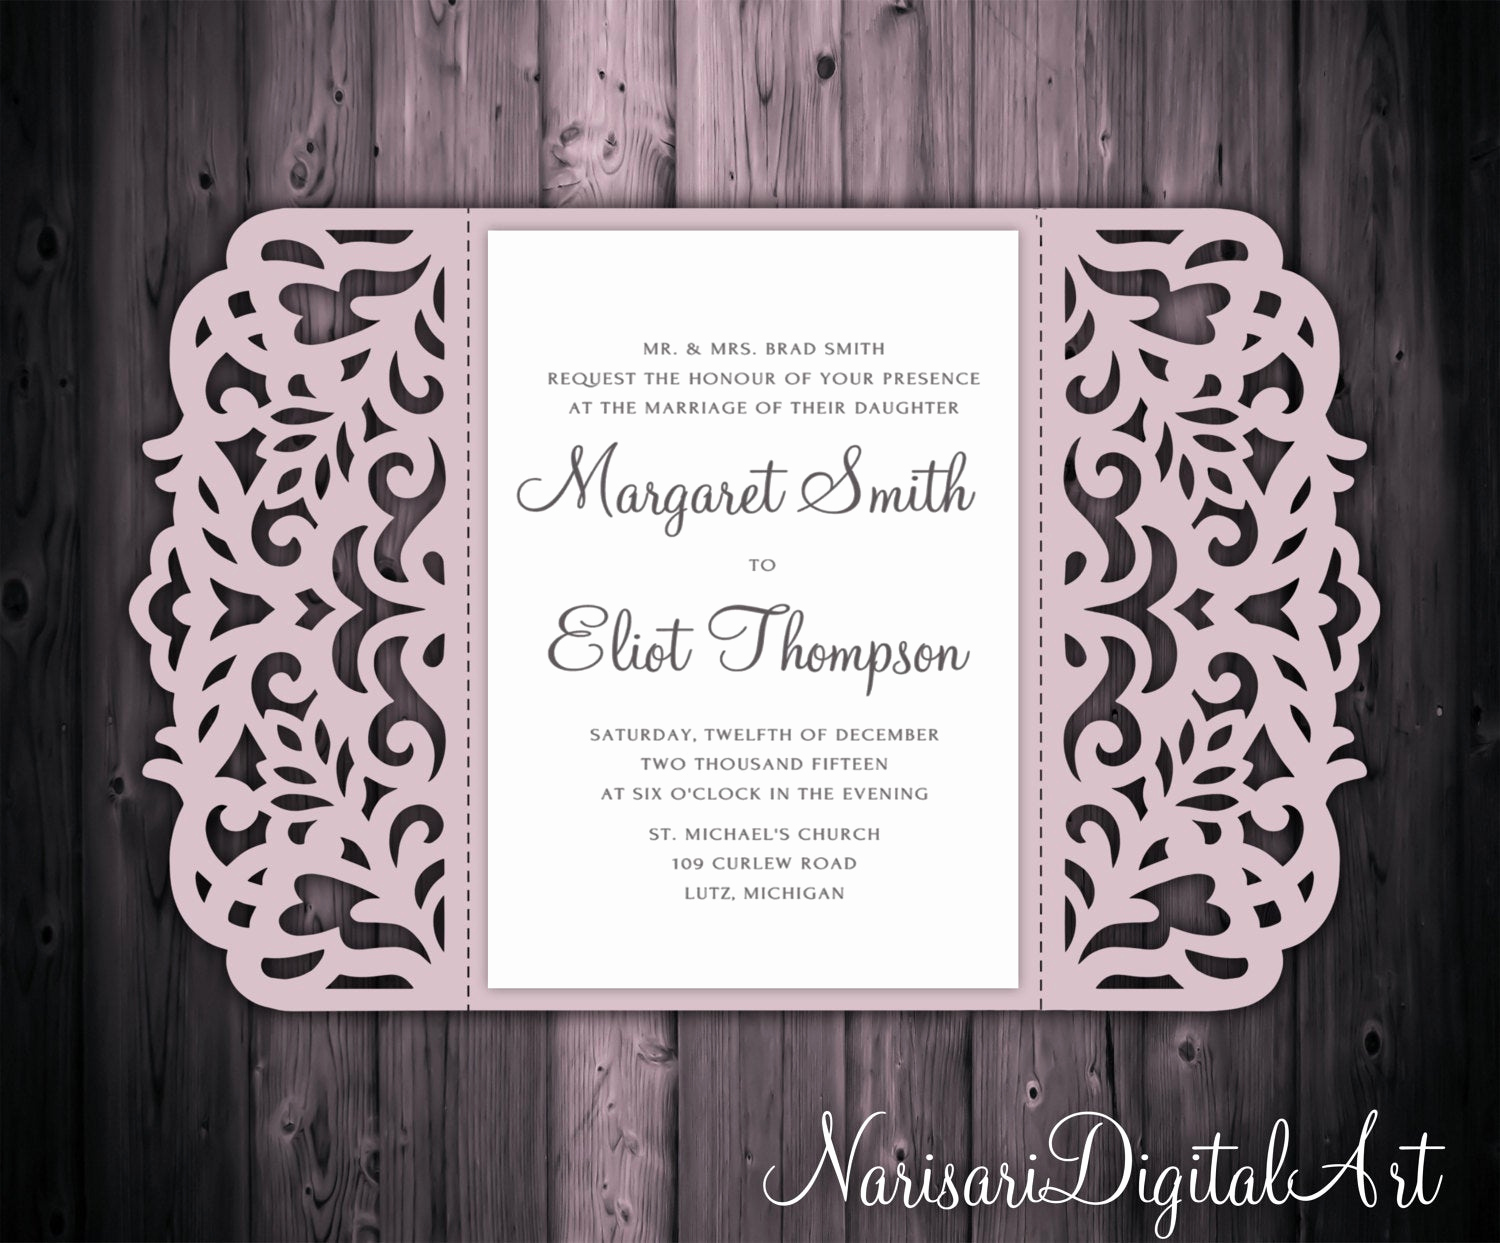 Gate Fold Invitation Template New 5x7 Gate Fold Wedding Invitation Card Template